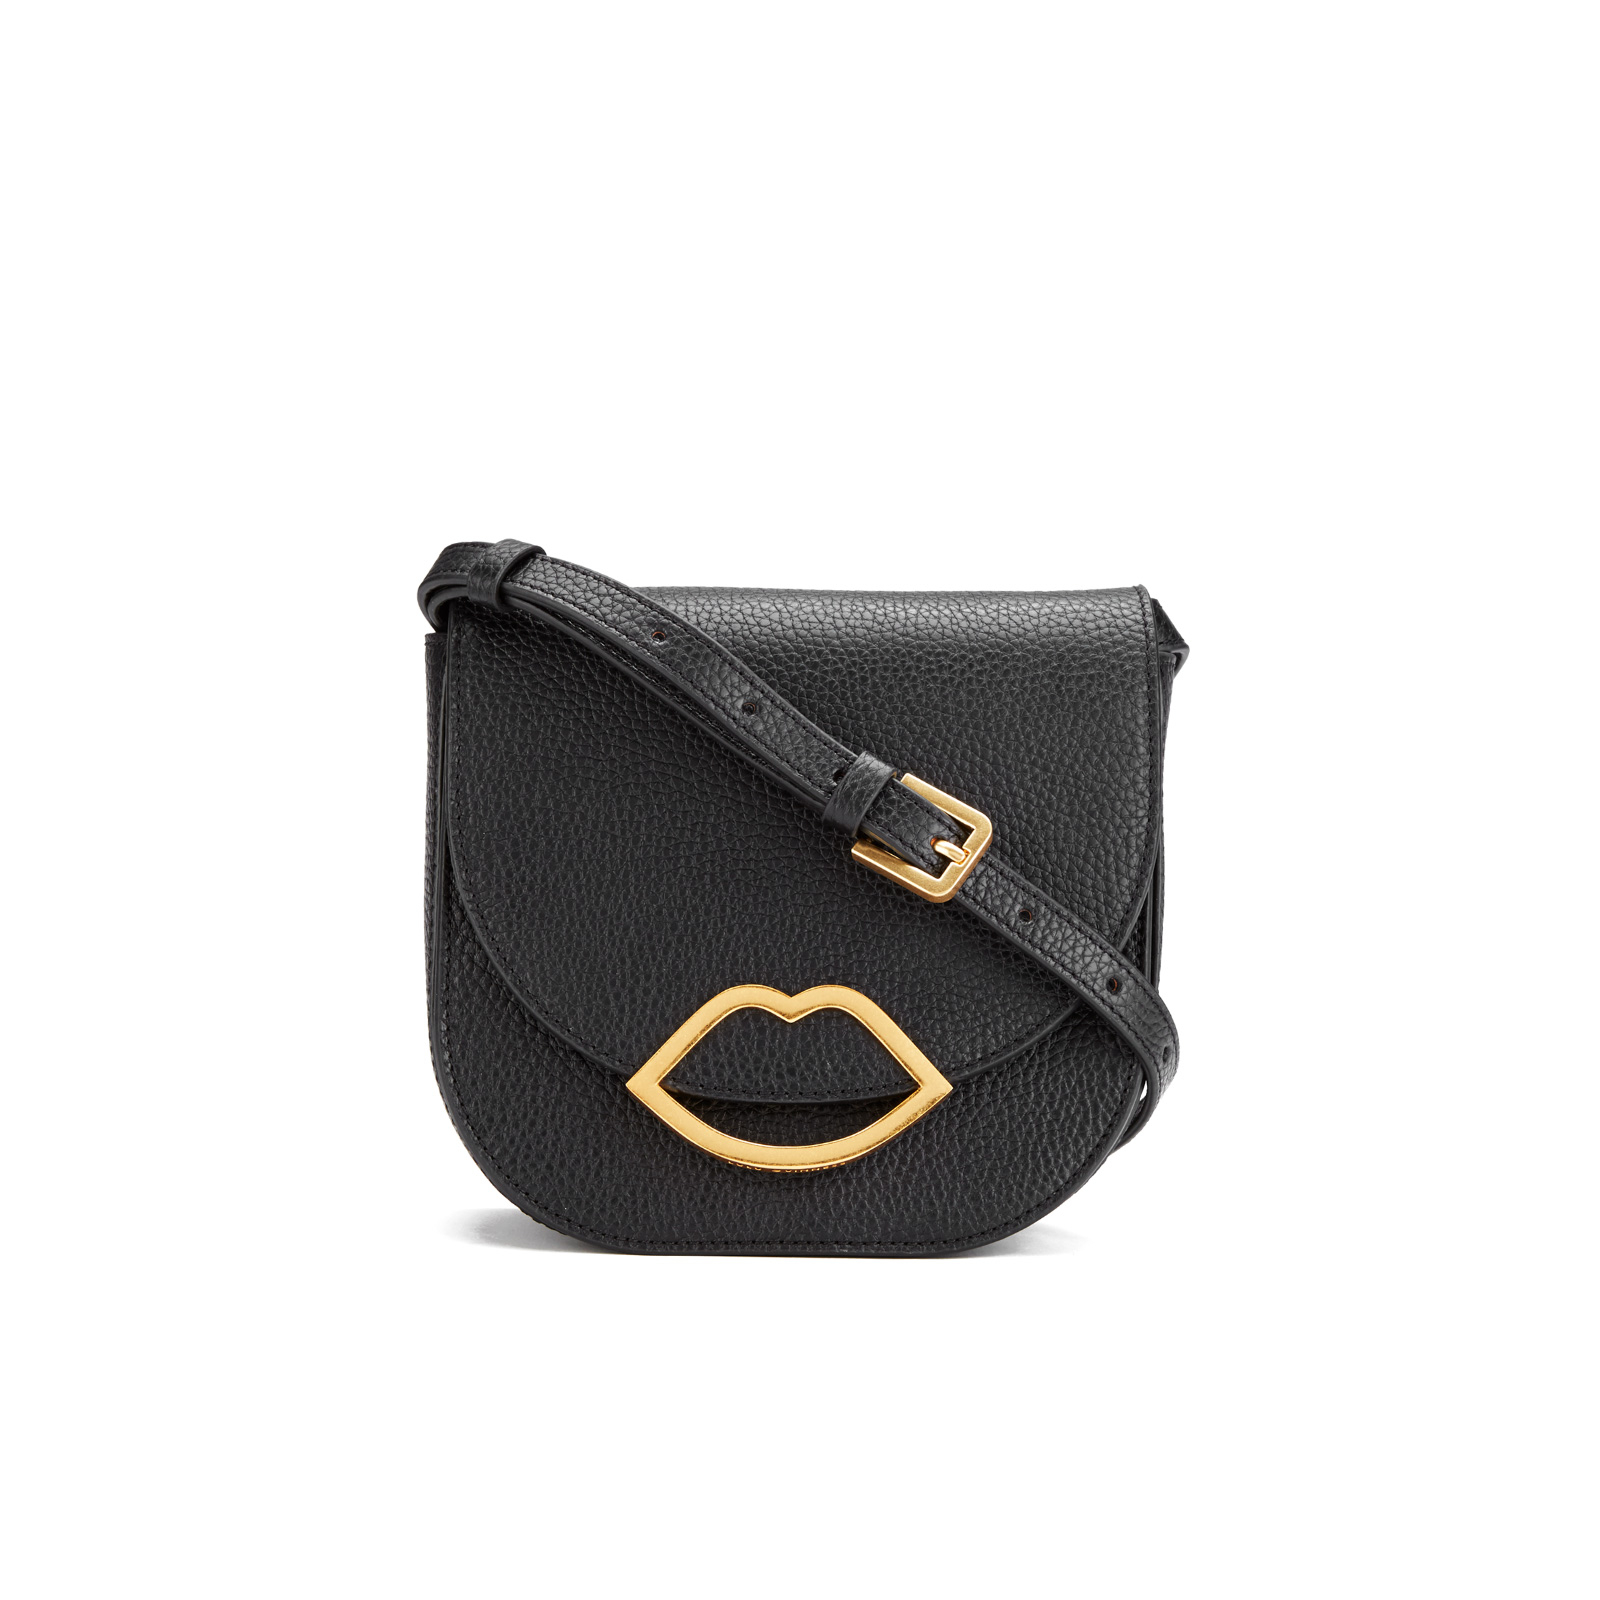 f871cc4d58ae Lulu Guinness Women s Zoe Large Crossbody Bag - Black - Free UK Delivery  over £50